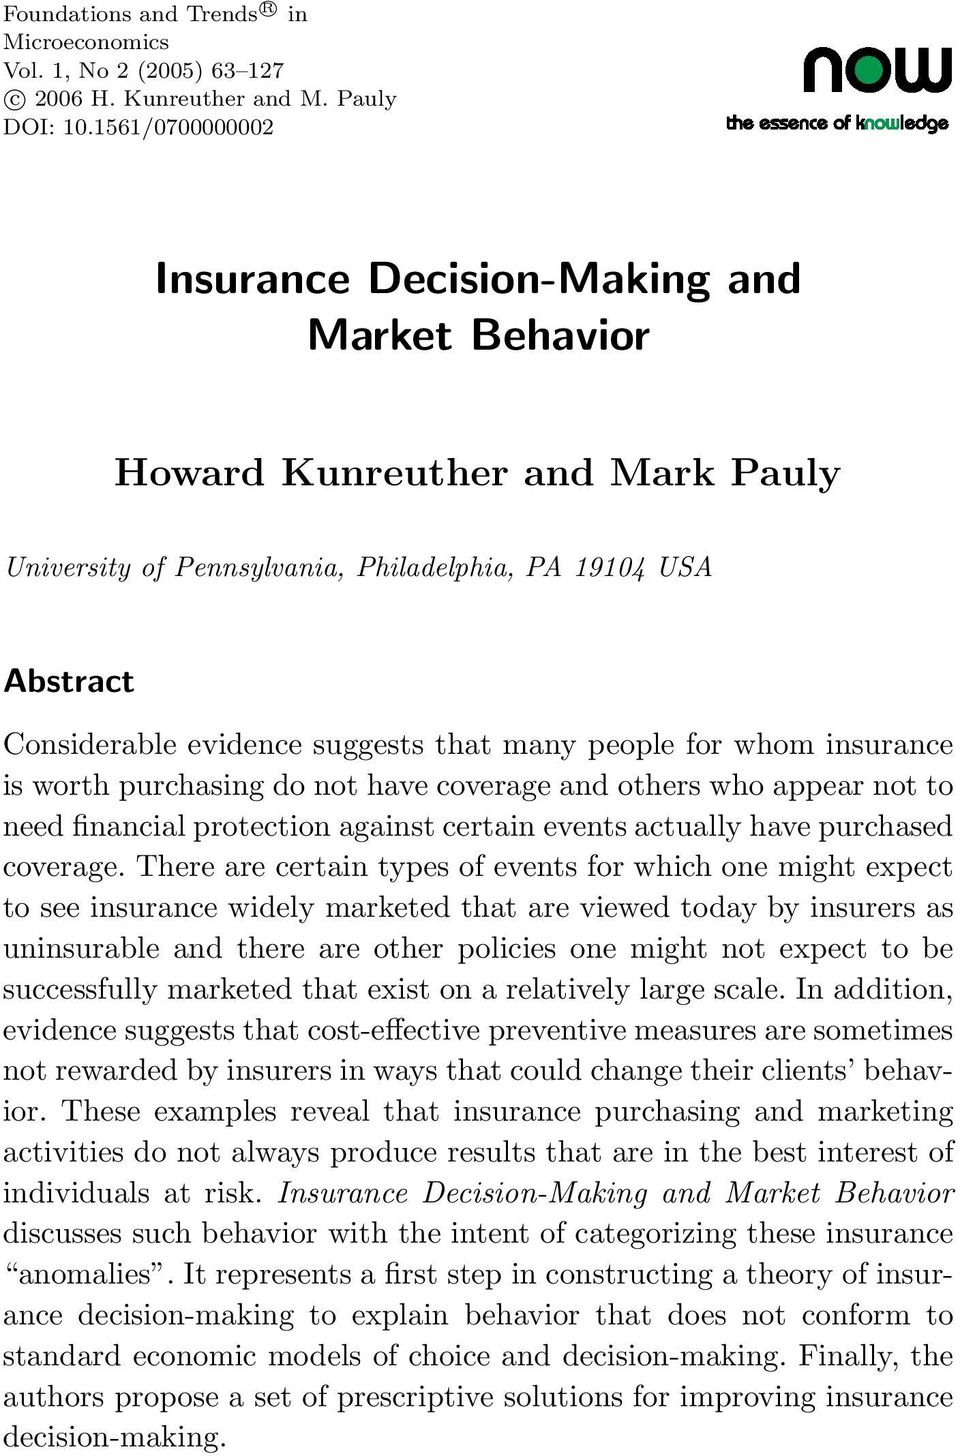 people for whom insurance is worth purchasing do not have coverage and others who appear not to need financial protection against certain events actually have purchased coverage.